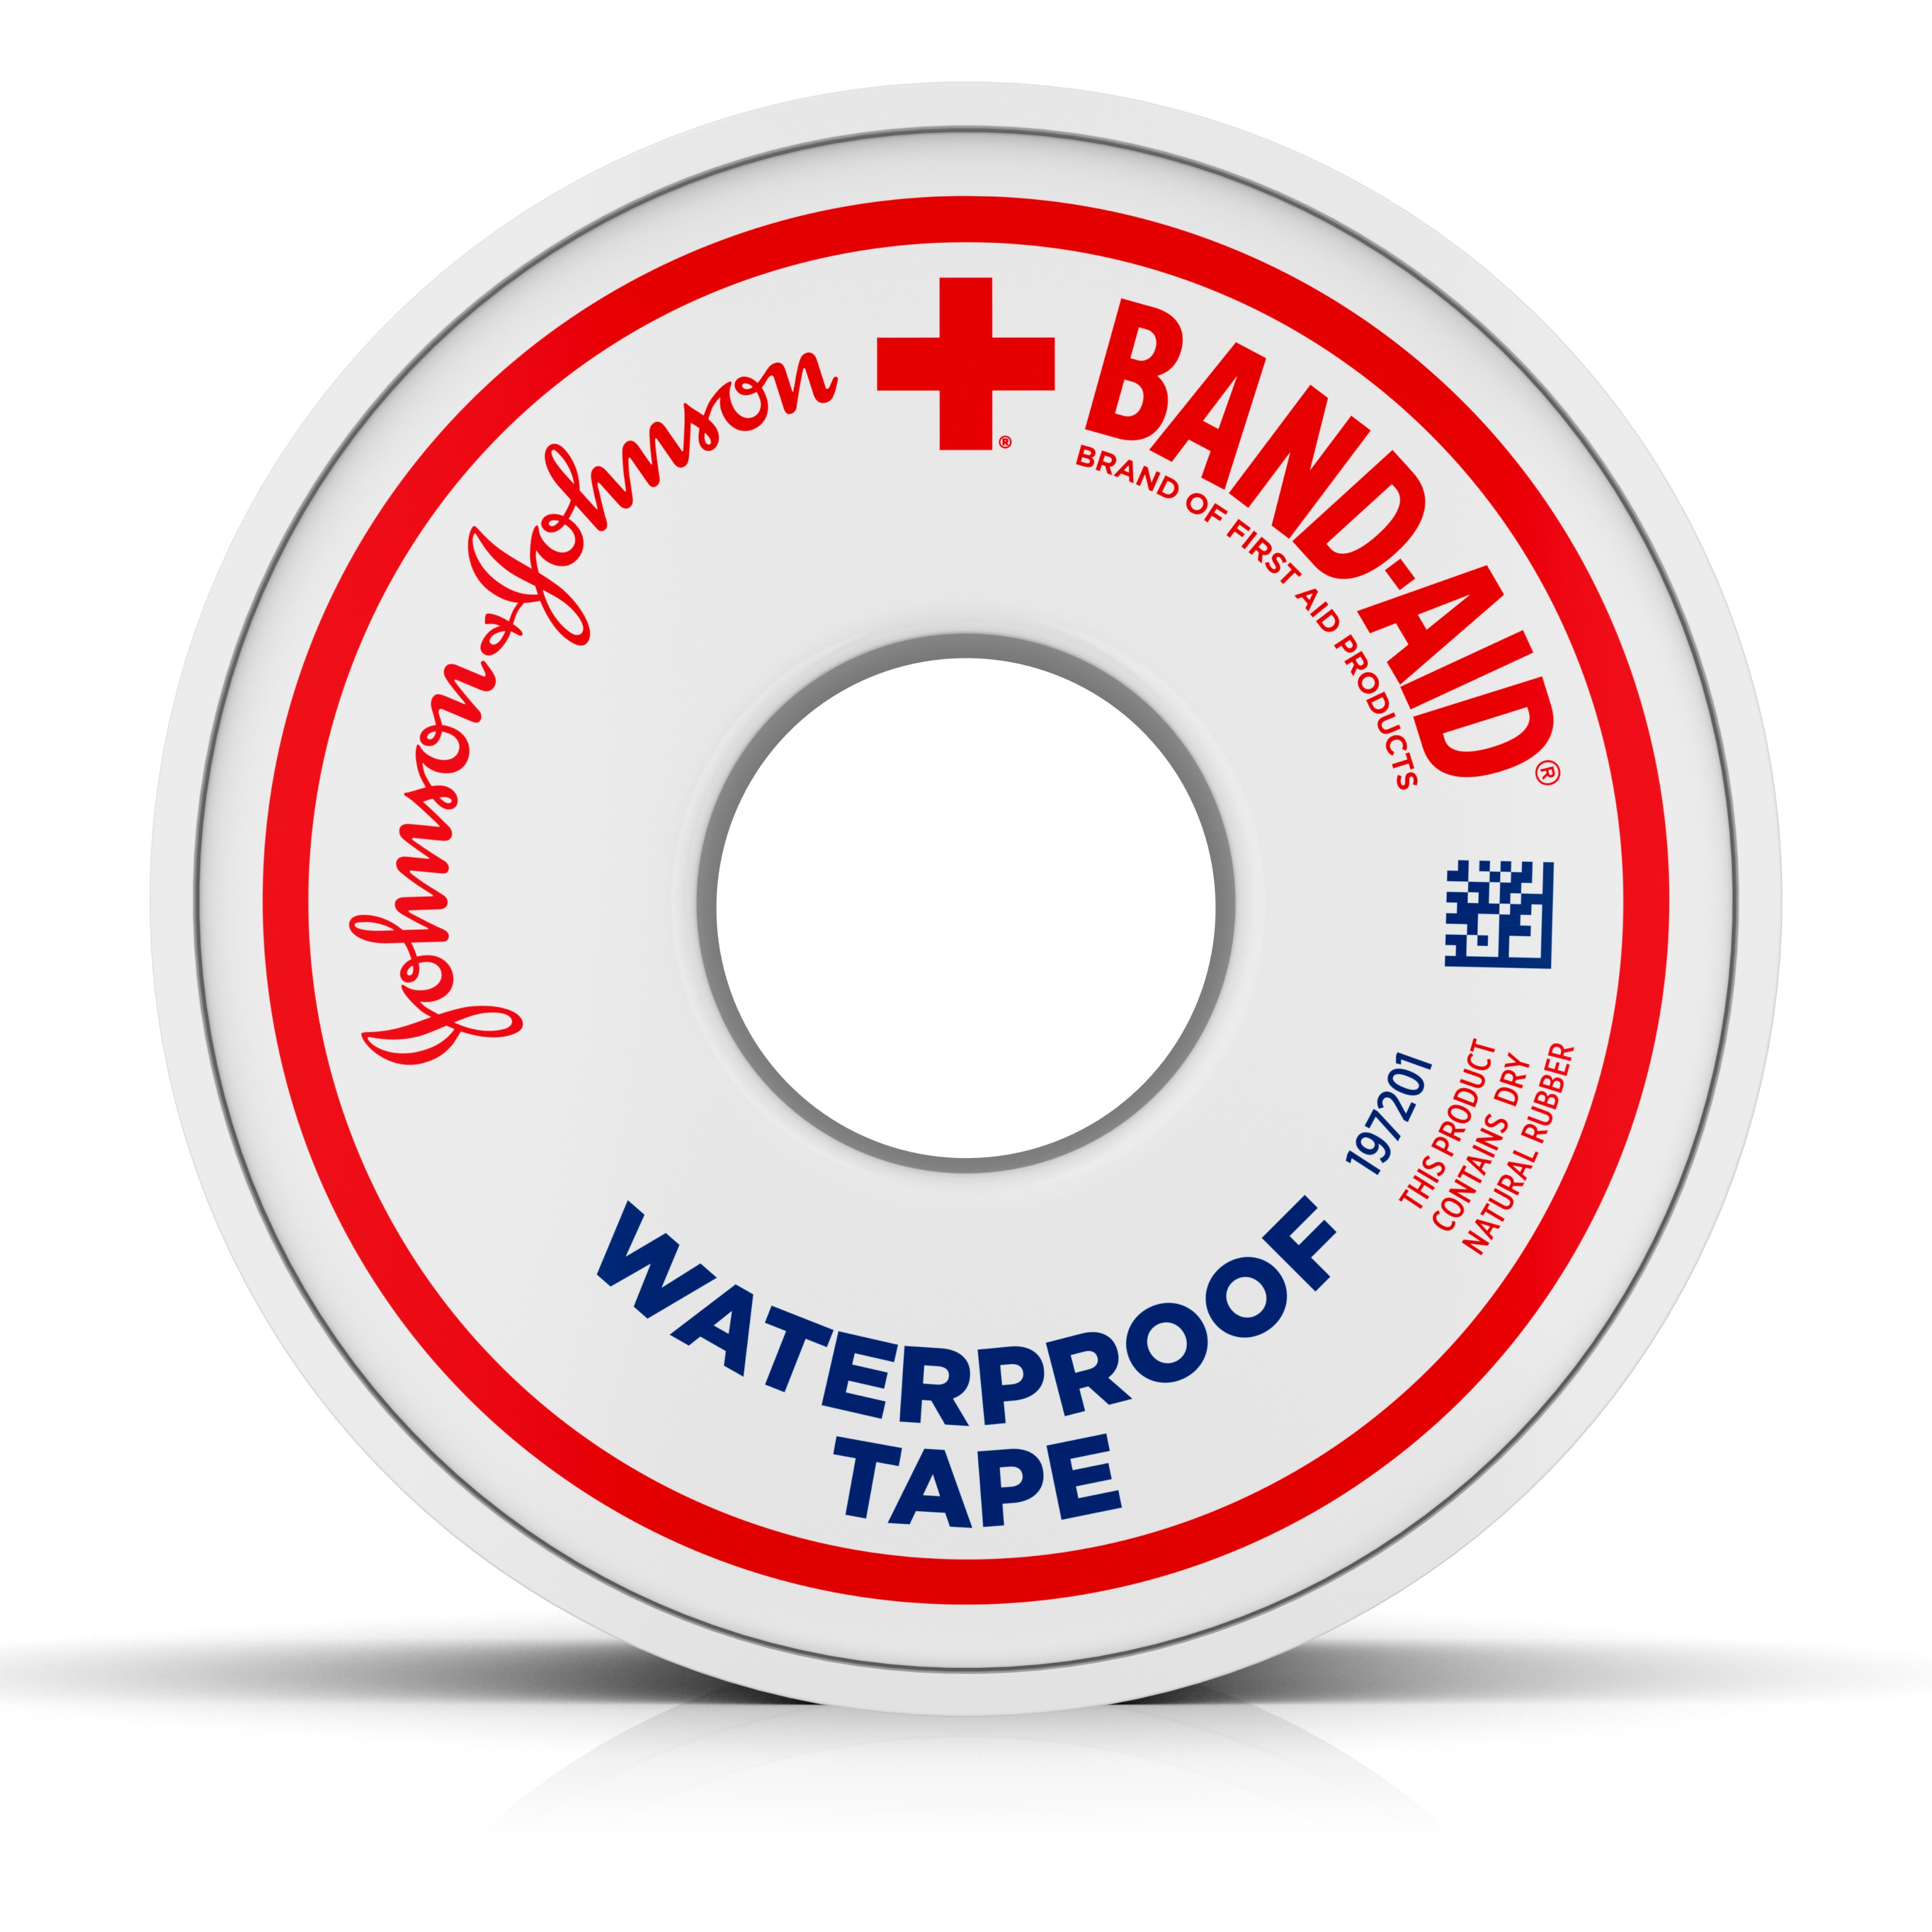 Band-Aid Brand of First Aid Products Waterproof Tape to Secure Bandages, 1 Inch by 10 Yards